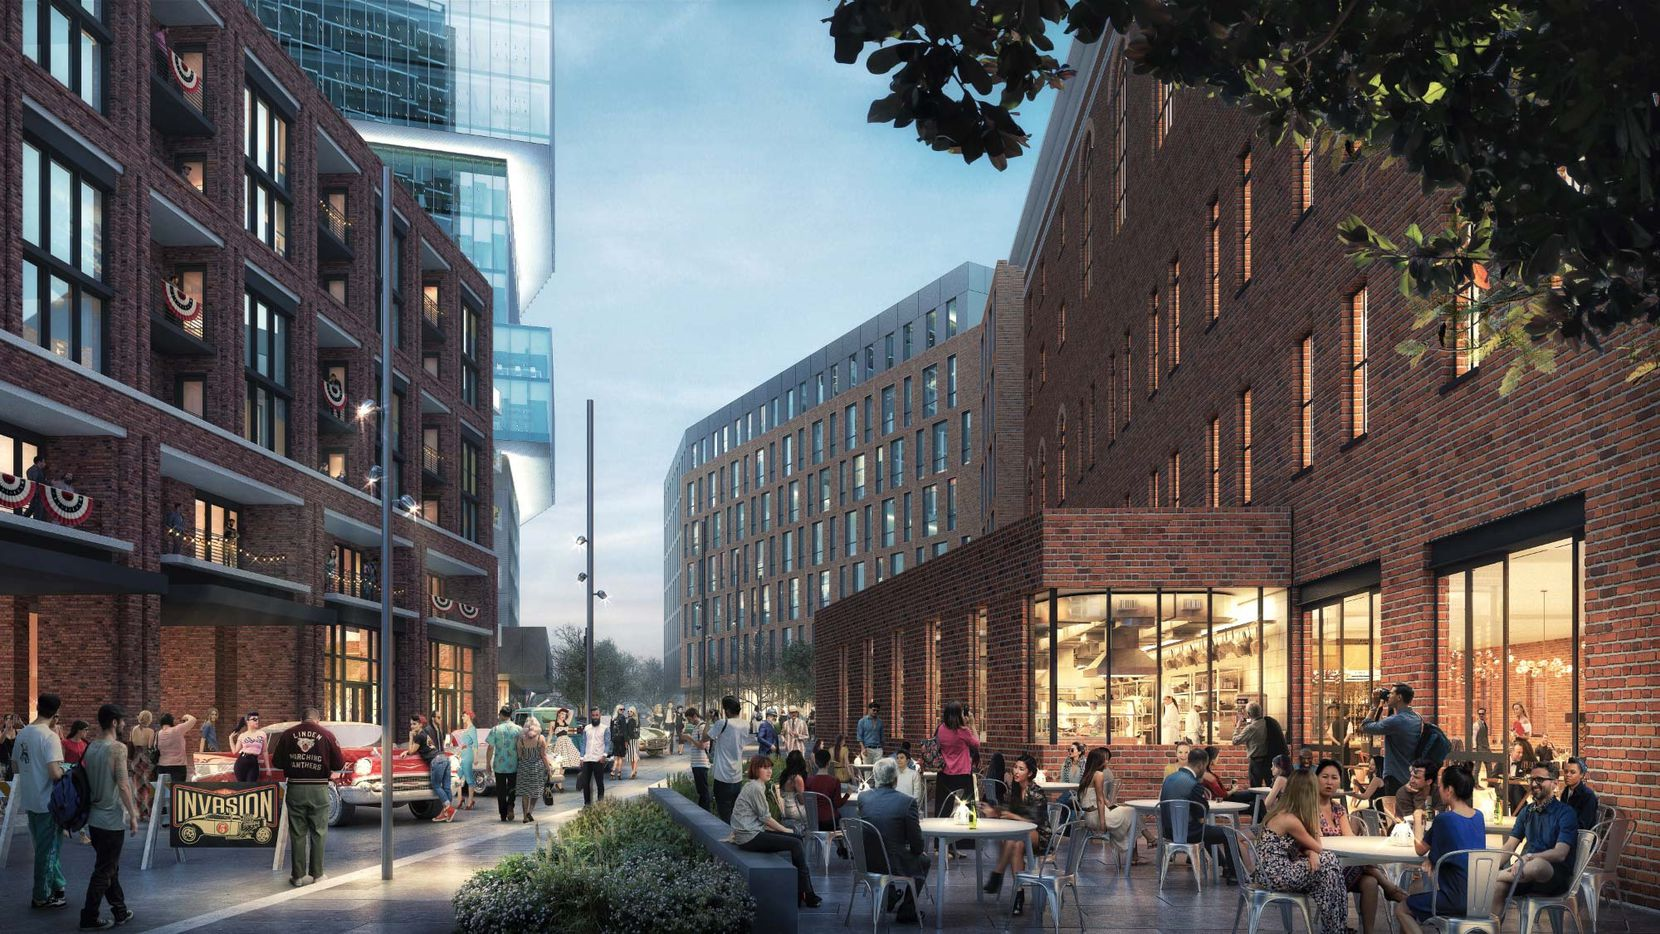 The Epic development includes retail space built along a new street between the apartment, hotel and office buildings.